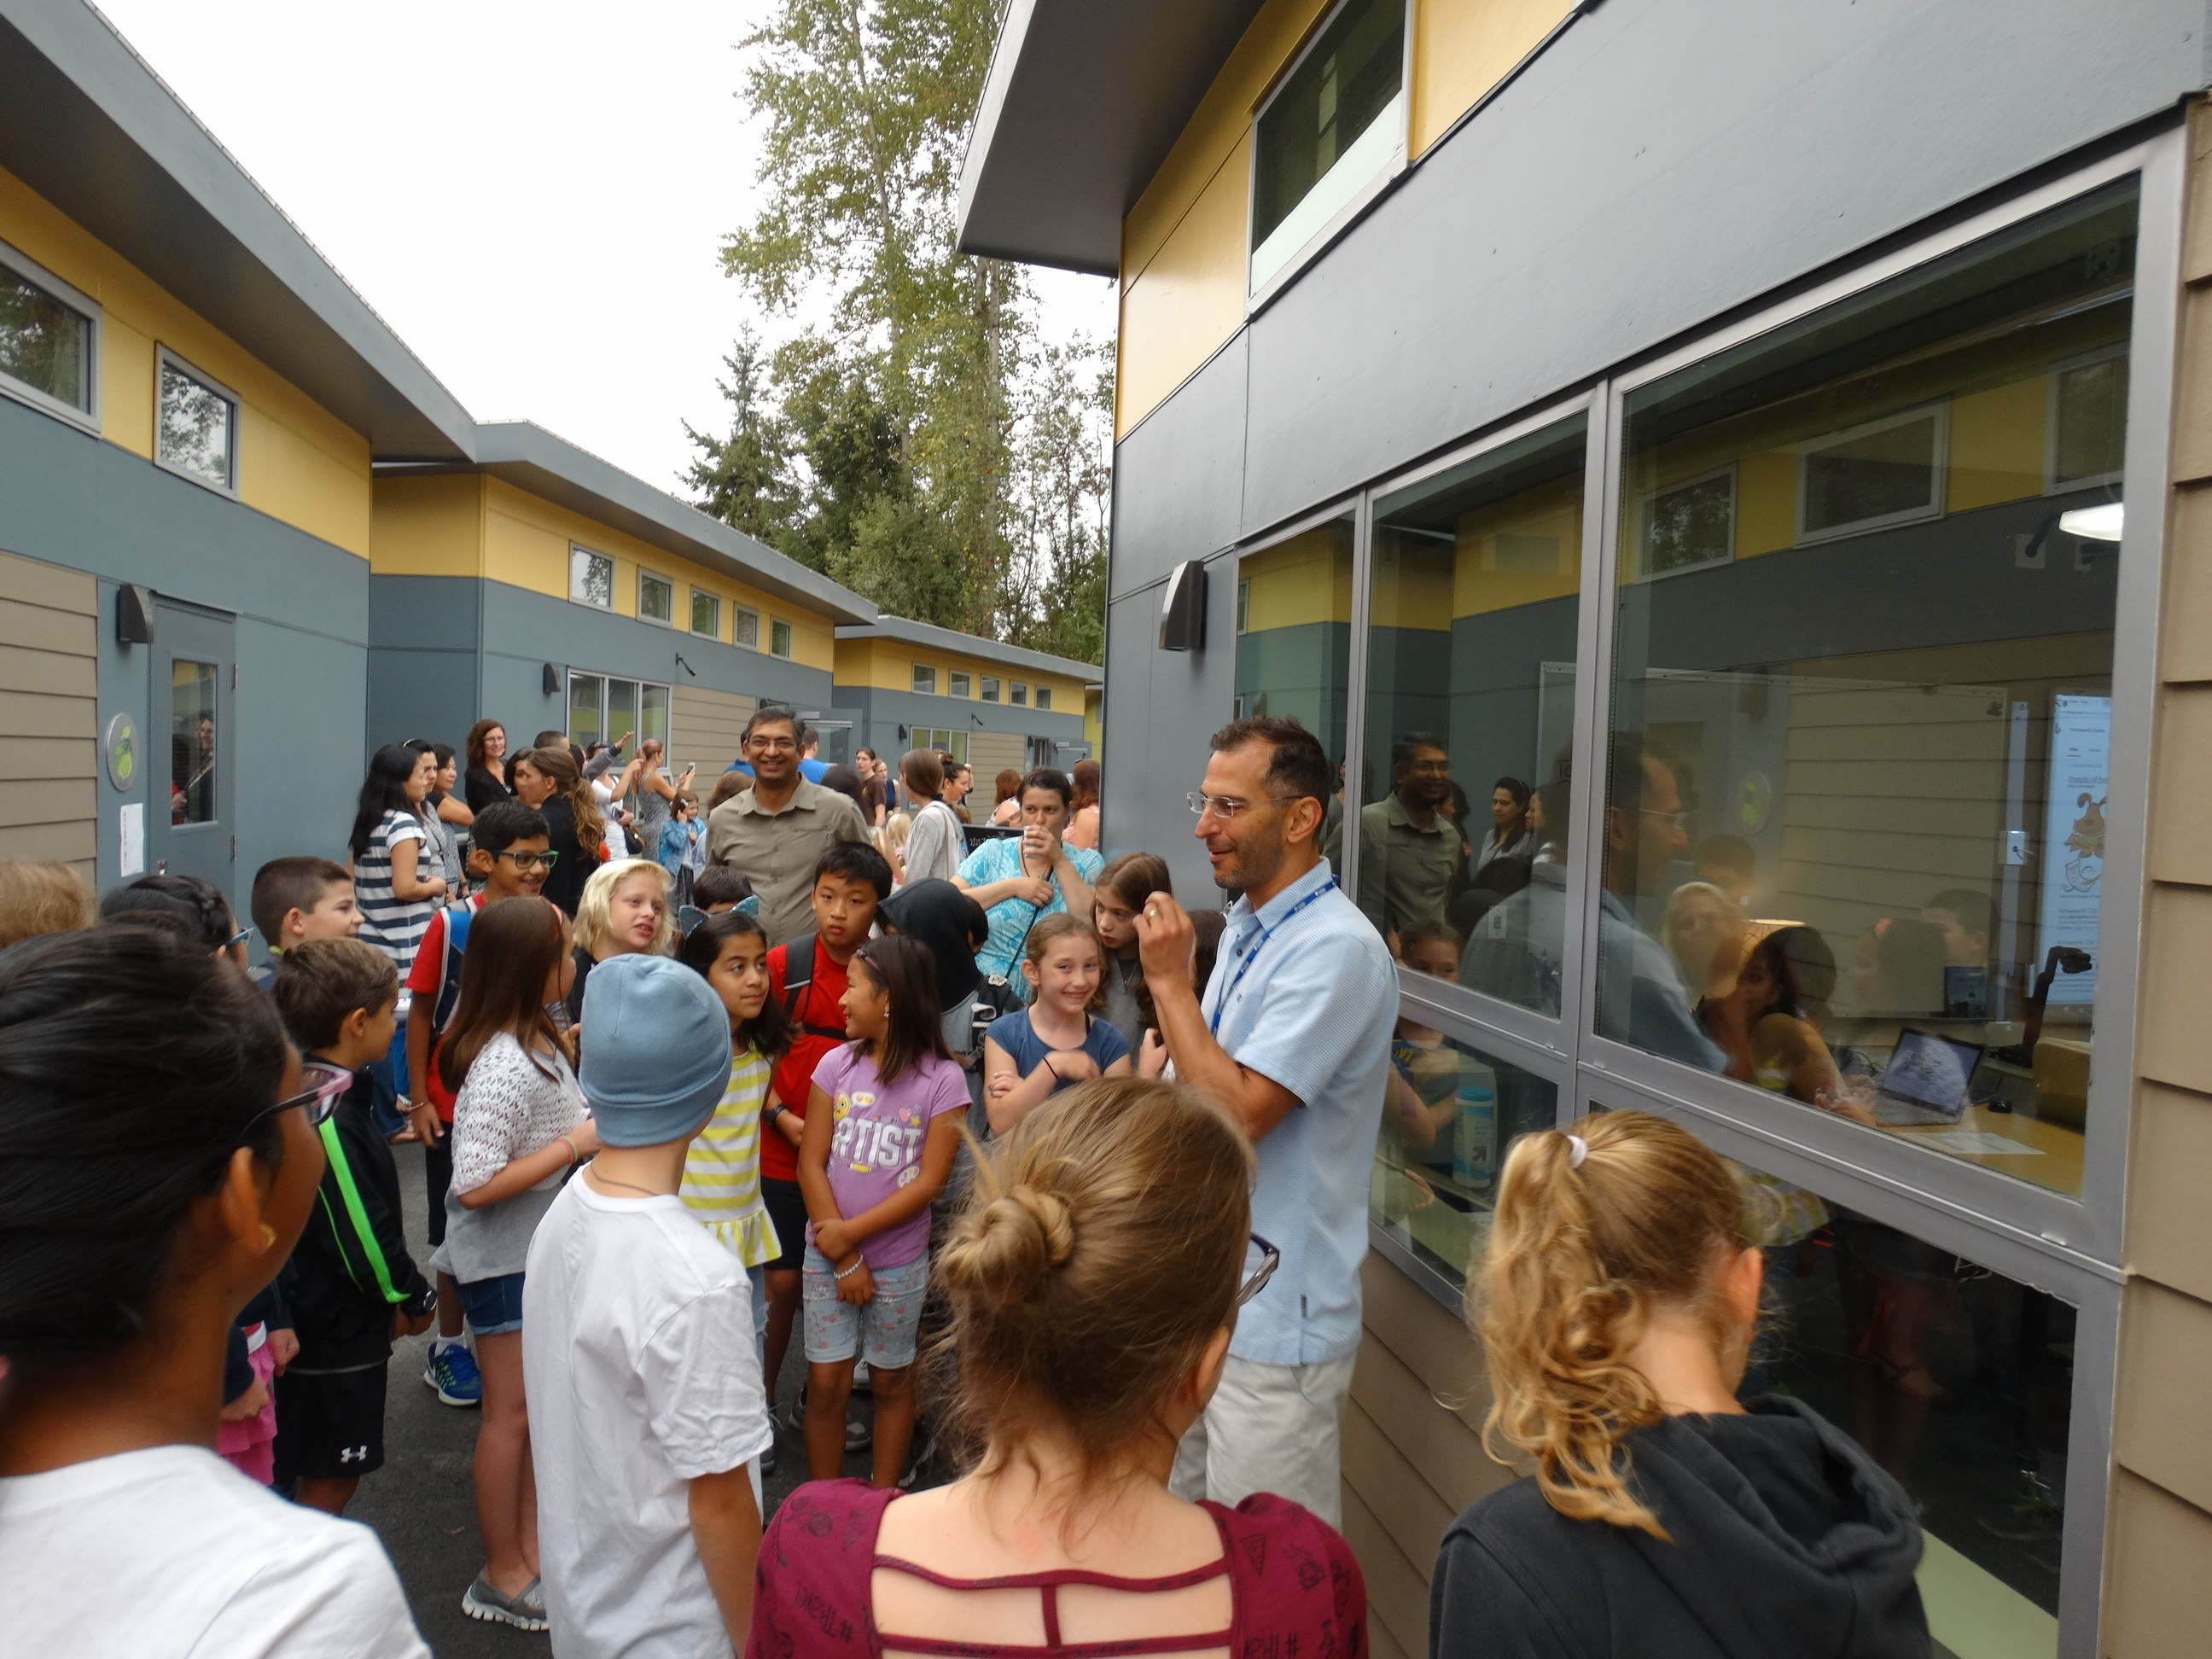 Teachers and students on the Explorer campus between buildings